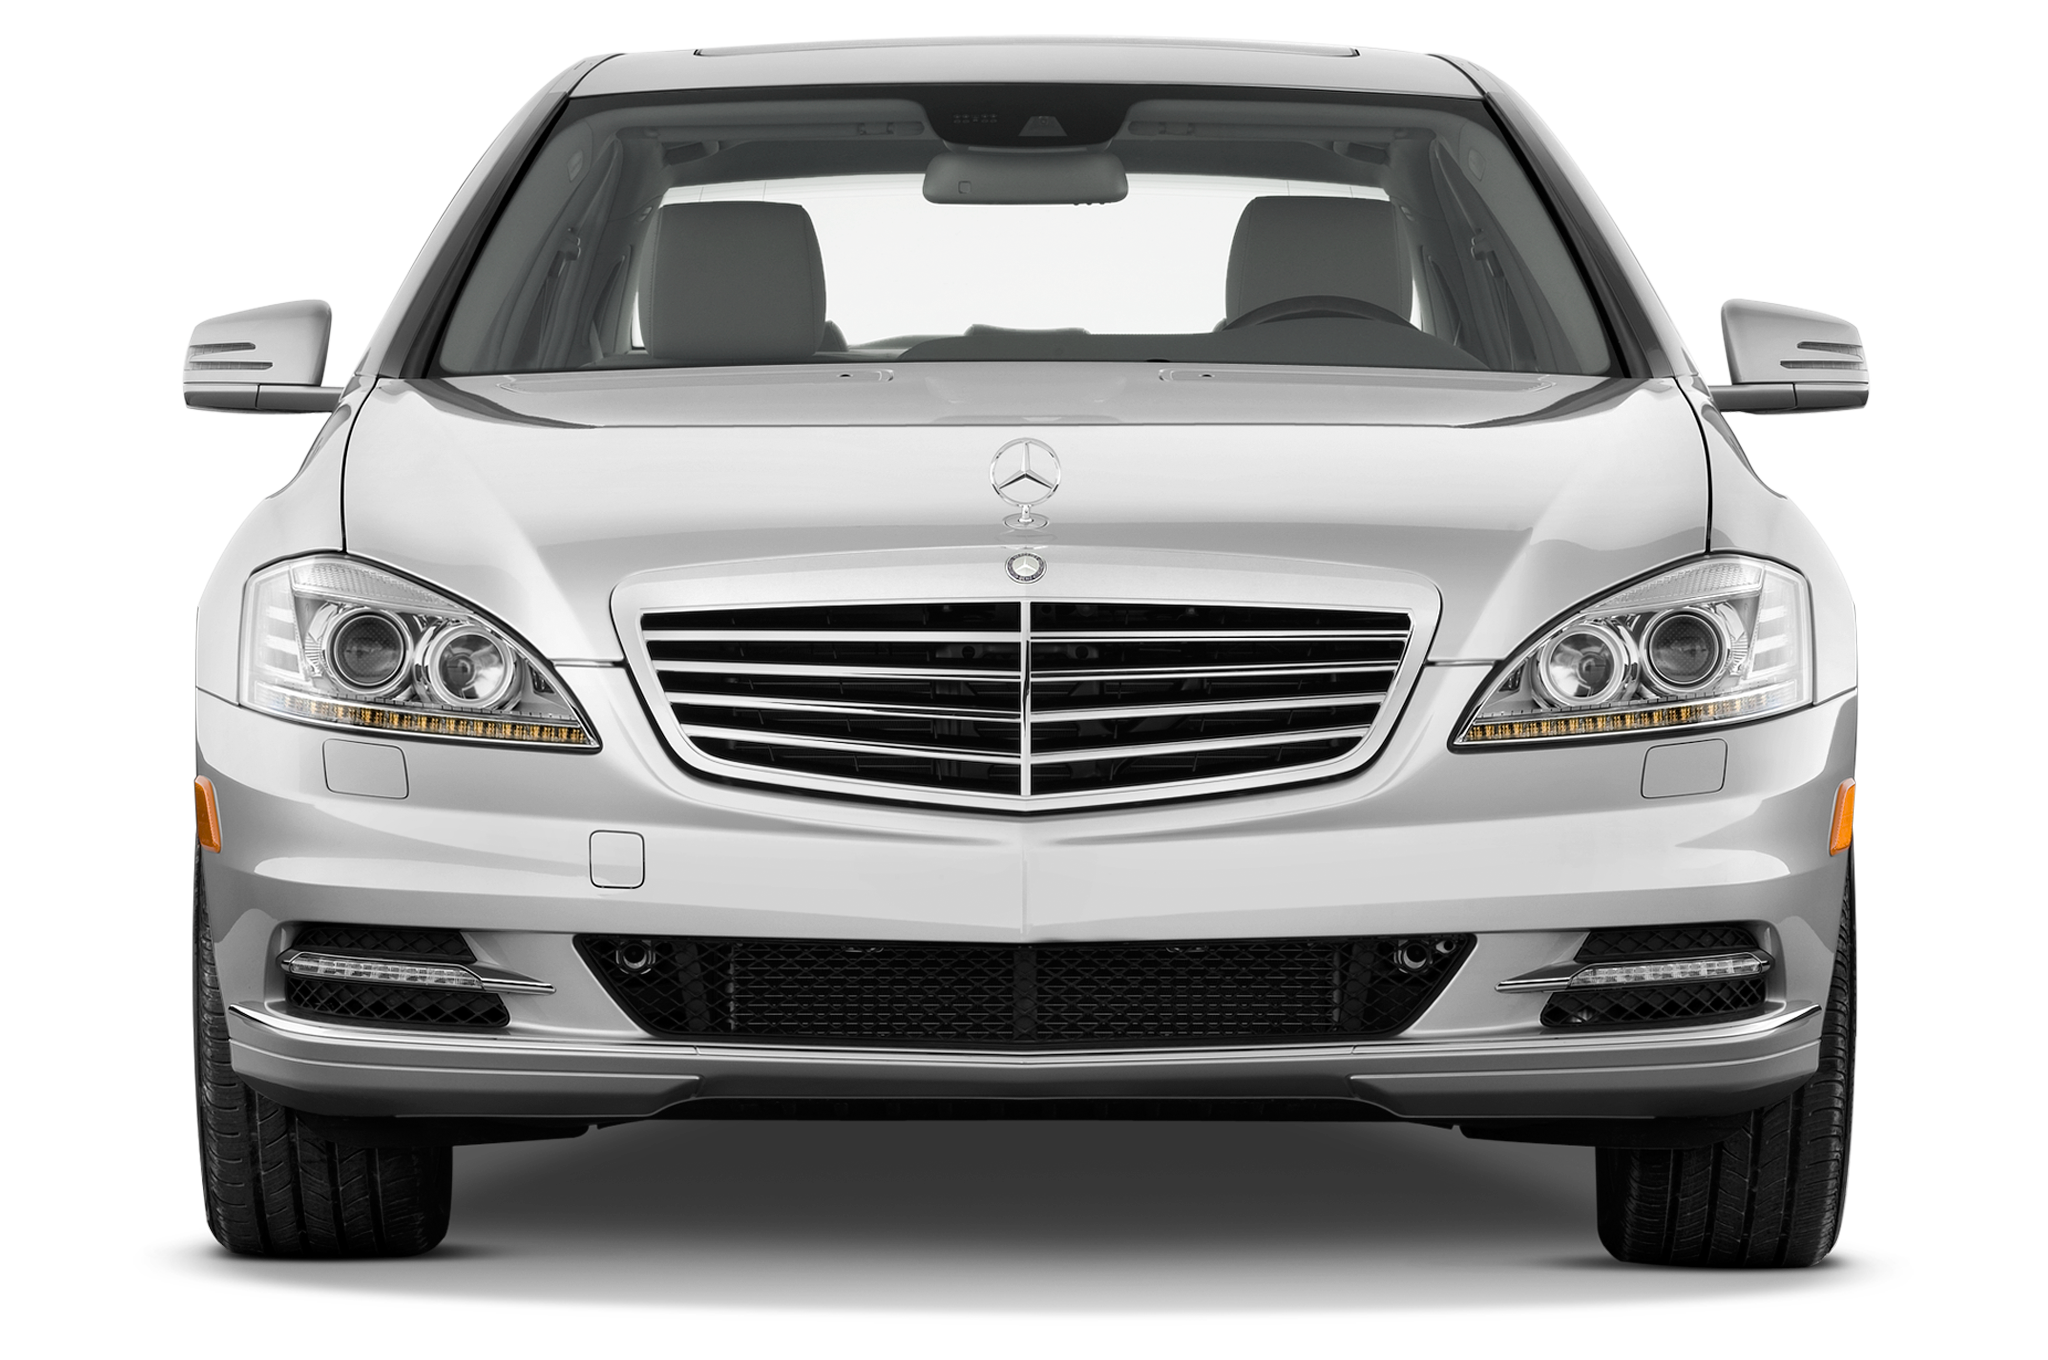 Mercedes benz plans to scrap maybach luxury brand by 2013 for Mercedes plan